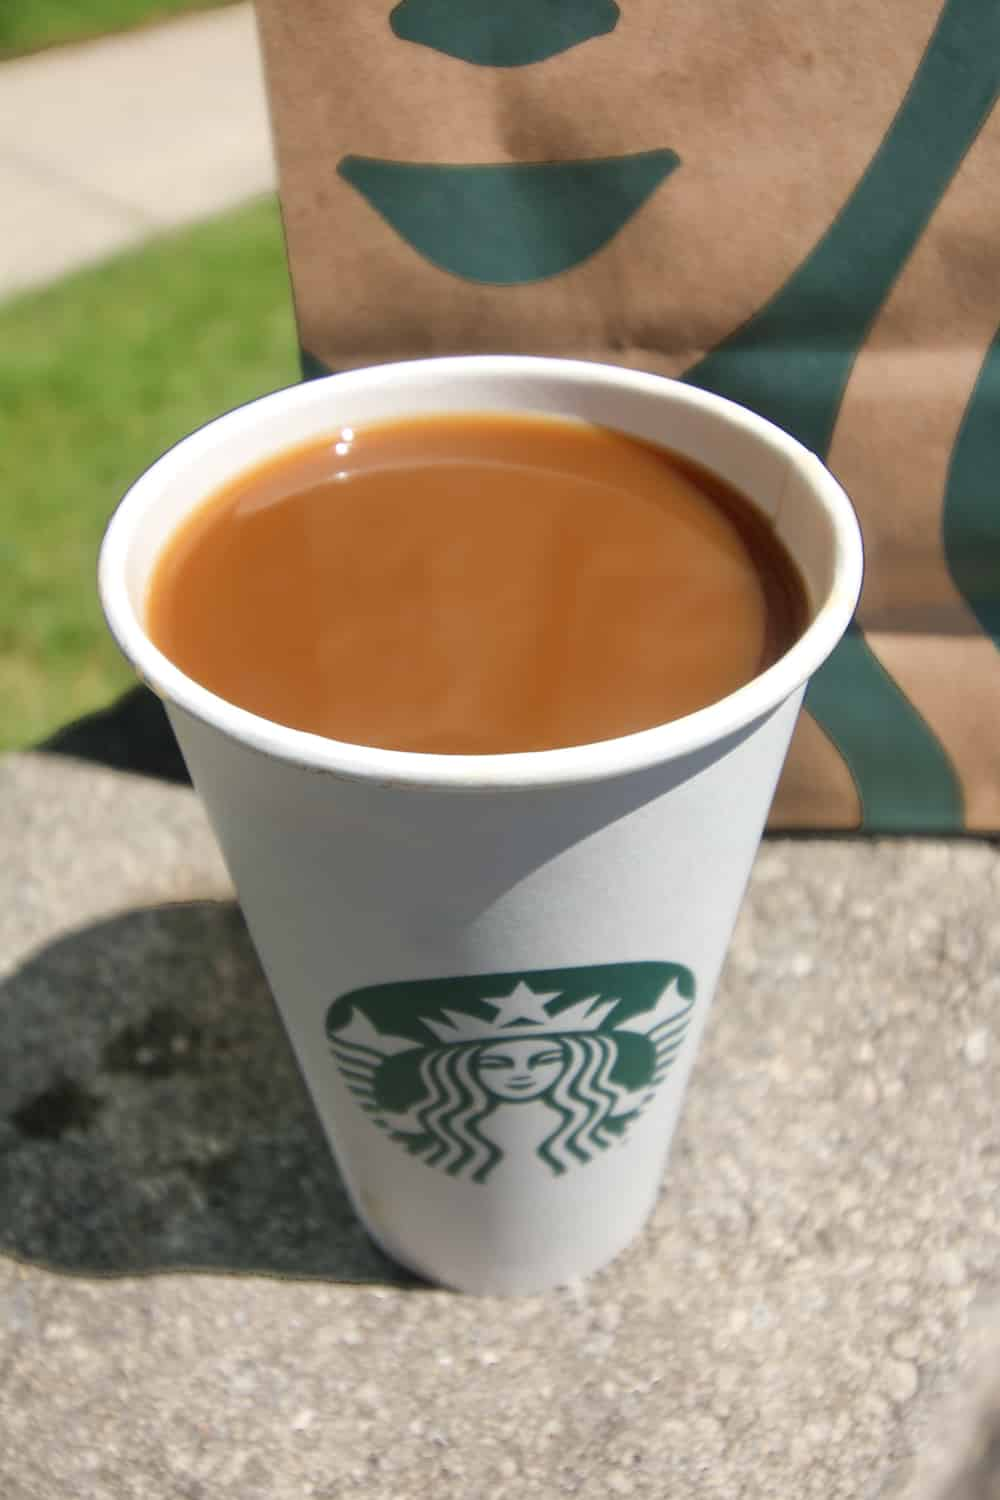 A hot coffee in a paper cup.